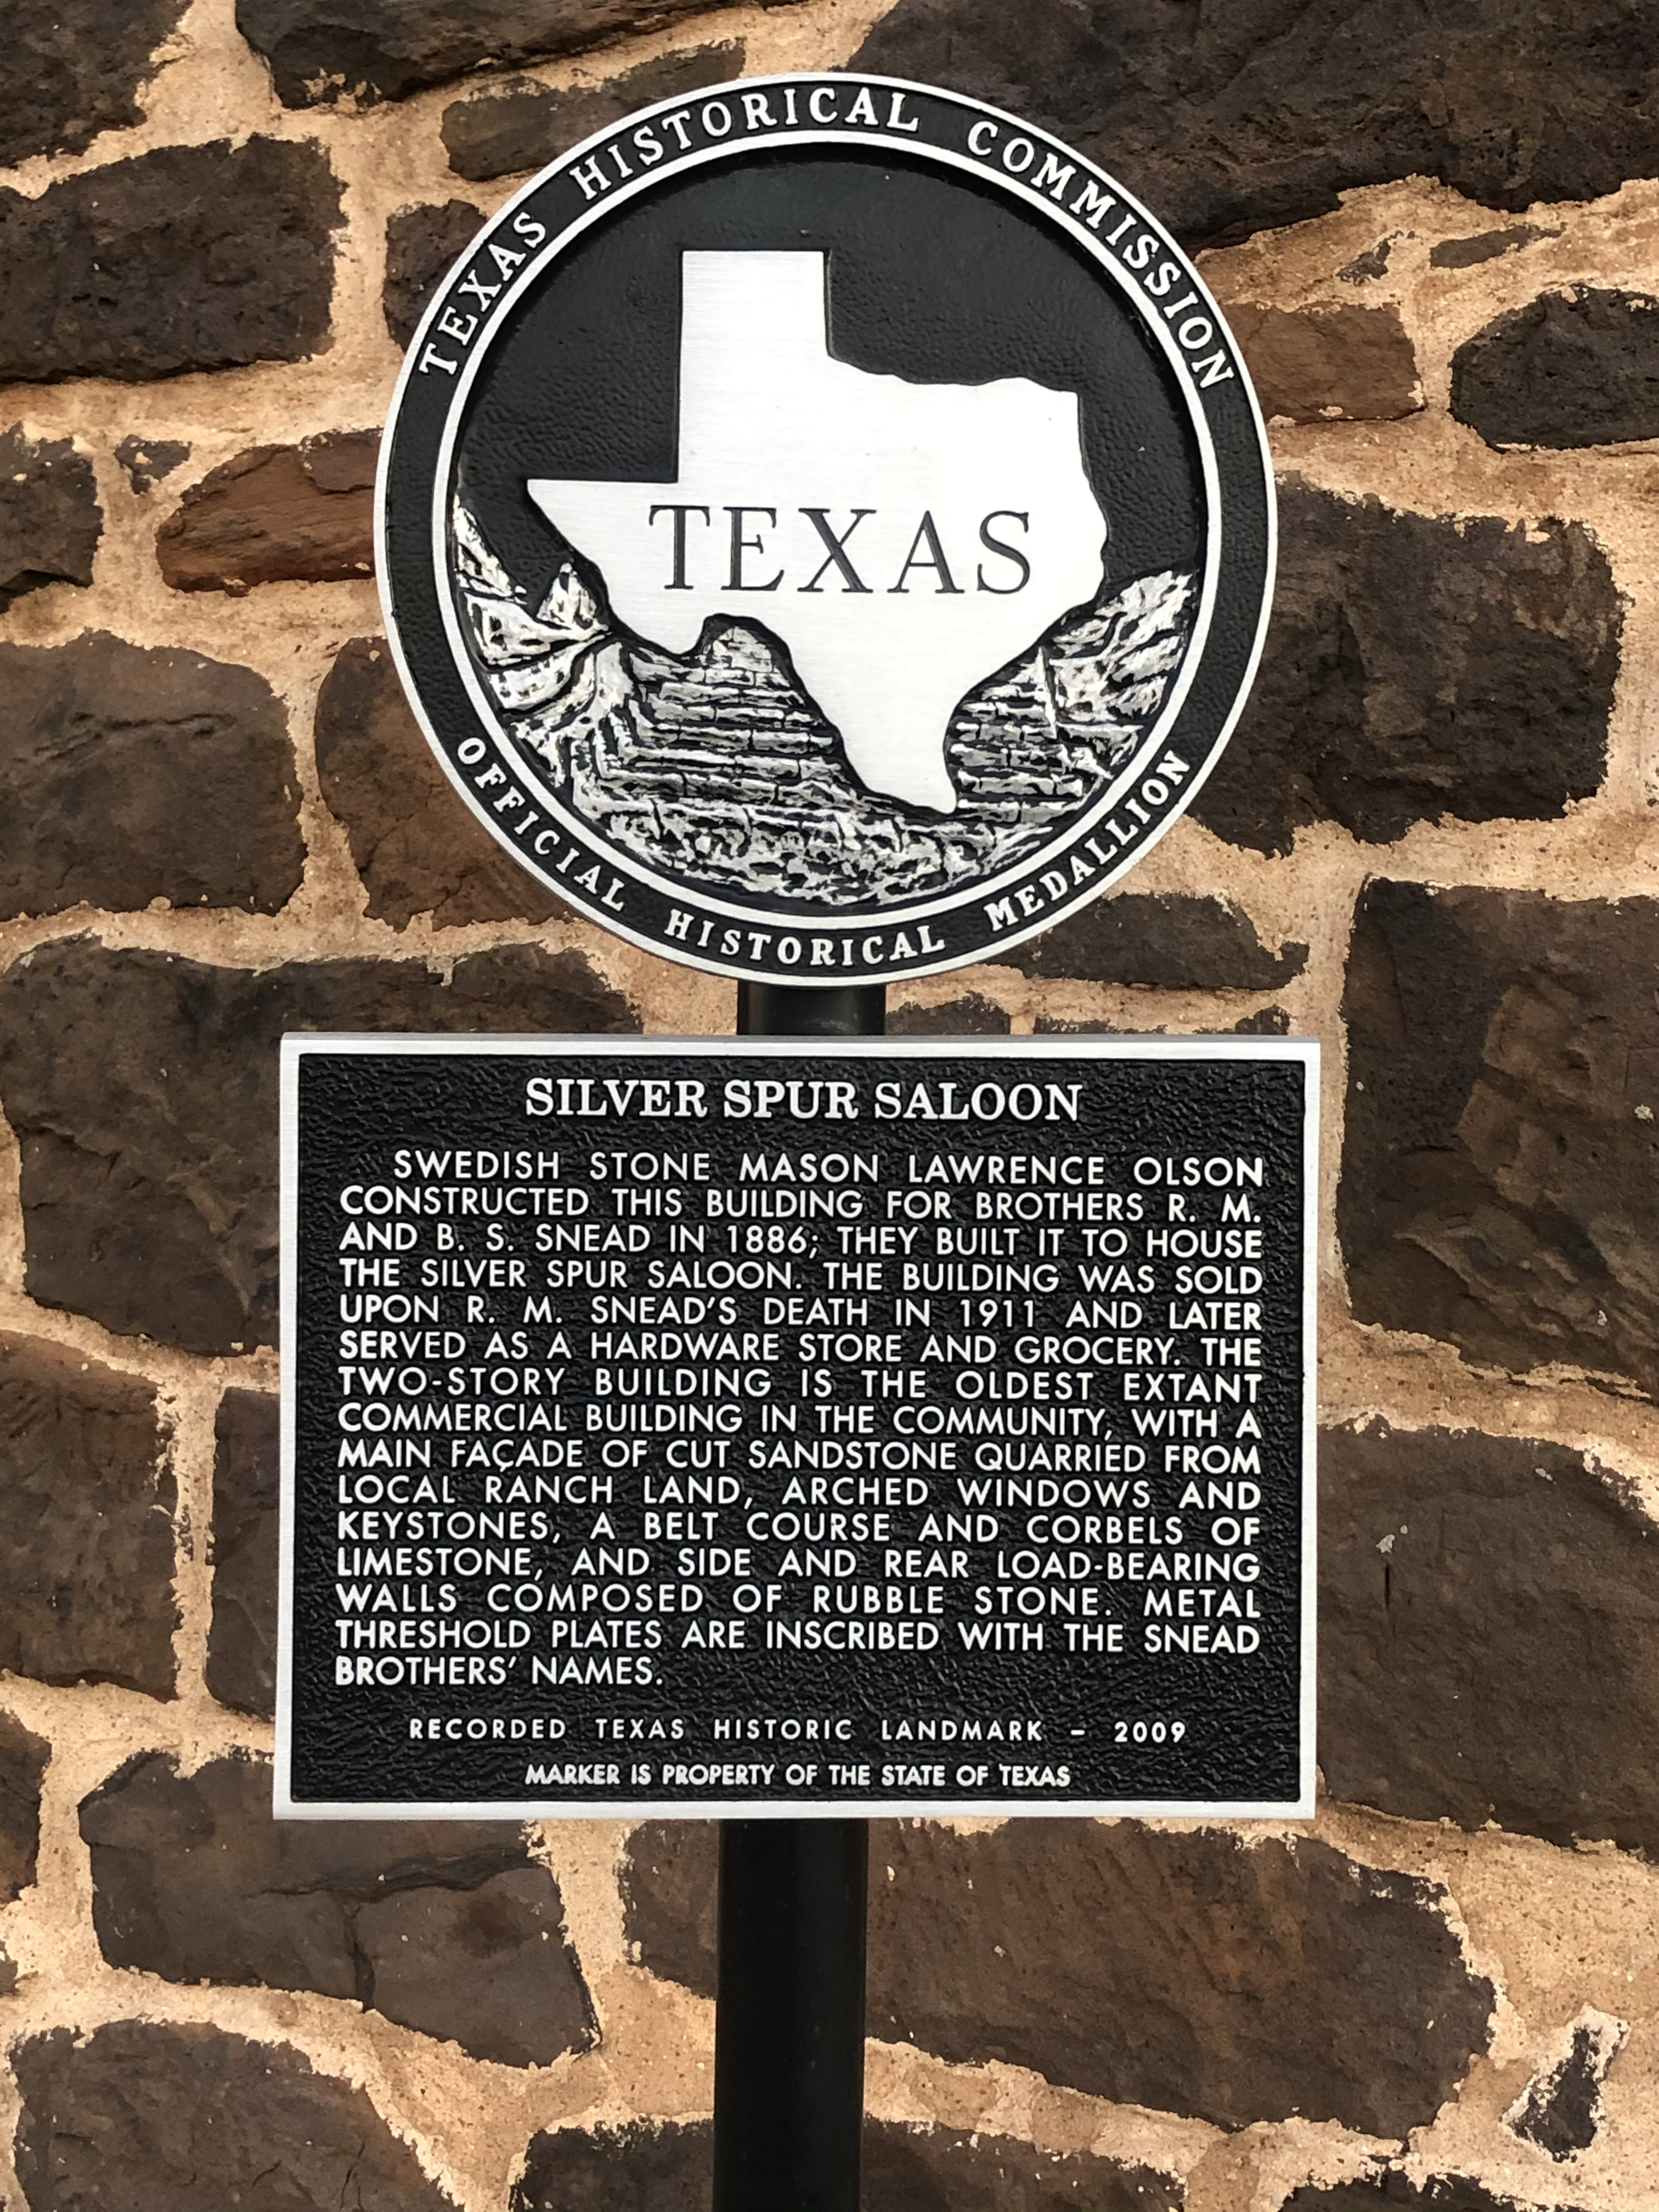 Silver Spur Saloon Marker